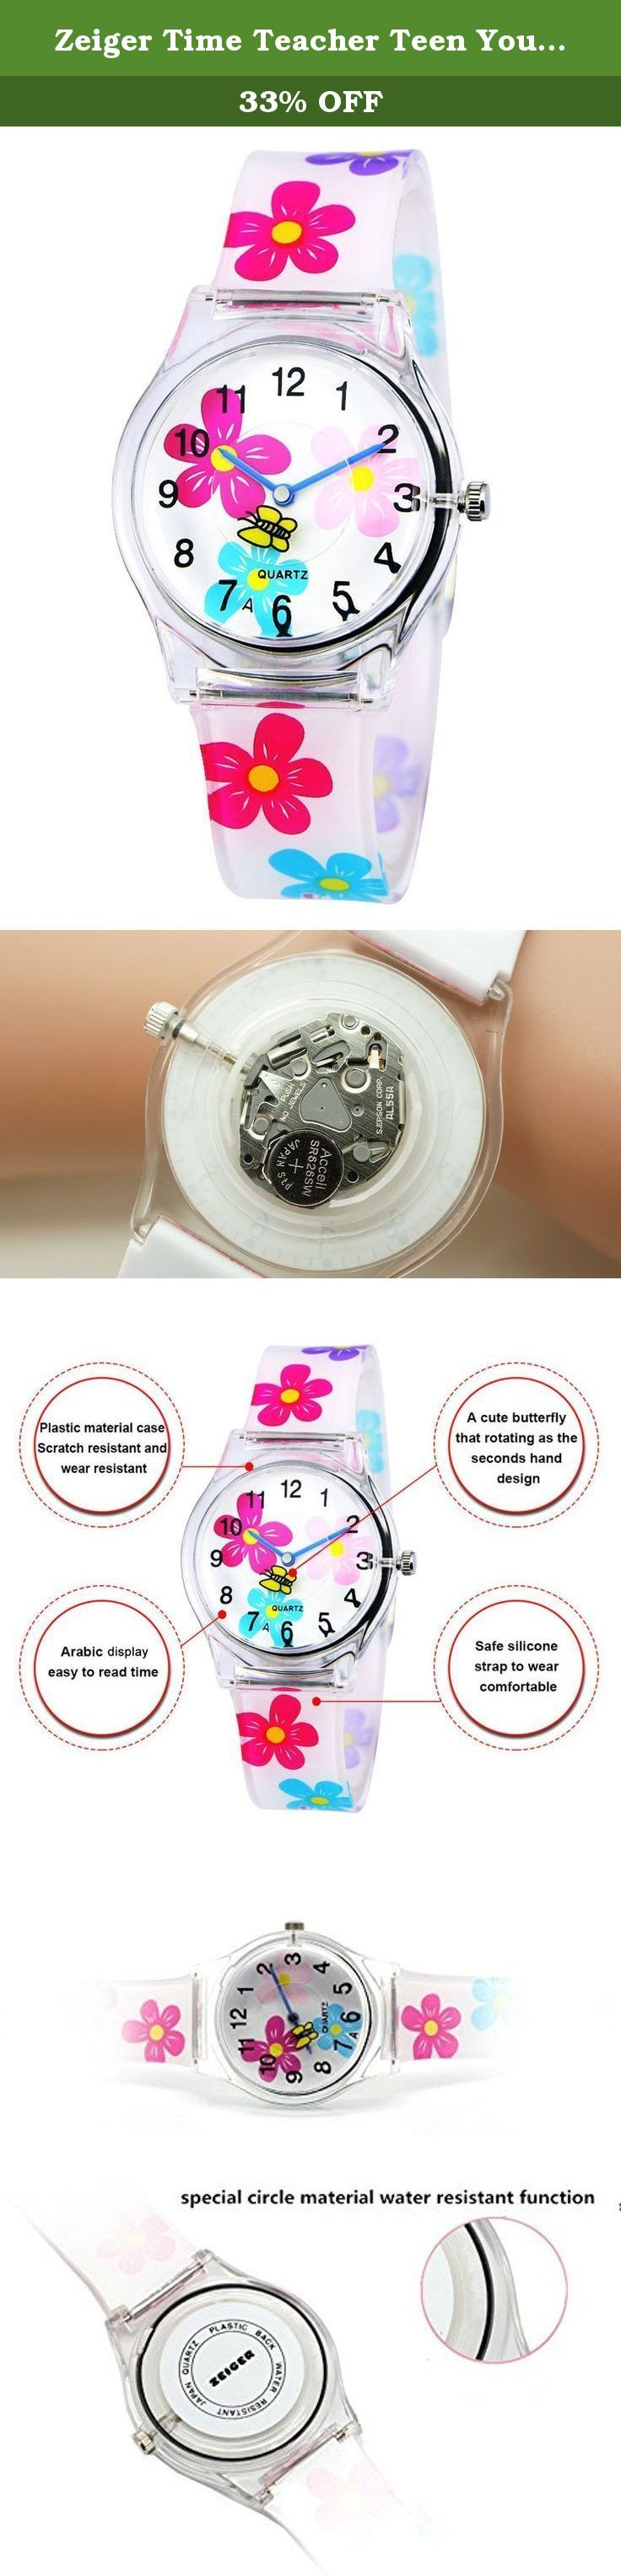 Zeiger Time Teacher Teen Young Girls Children Kids Watches, Colorful Flower Resin Band. The Zeiger Kids watch KW009 The Bold Numbers make it easy to read, plus the hour and minute hands are labeled so your child can learn faster. high-grade Silicon suitable for little wrist This is good choice, watches for kid. If you want your child to learn time. That to be a good choice for children Material: • Case Material: Silicon Rubber, Plastic • Band Material: Silicon Rubber • Mirror Surface:...